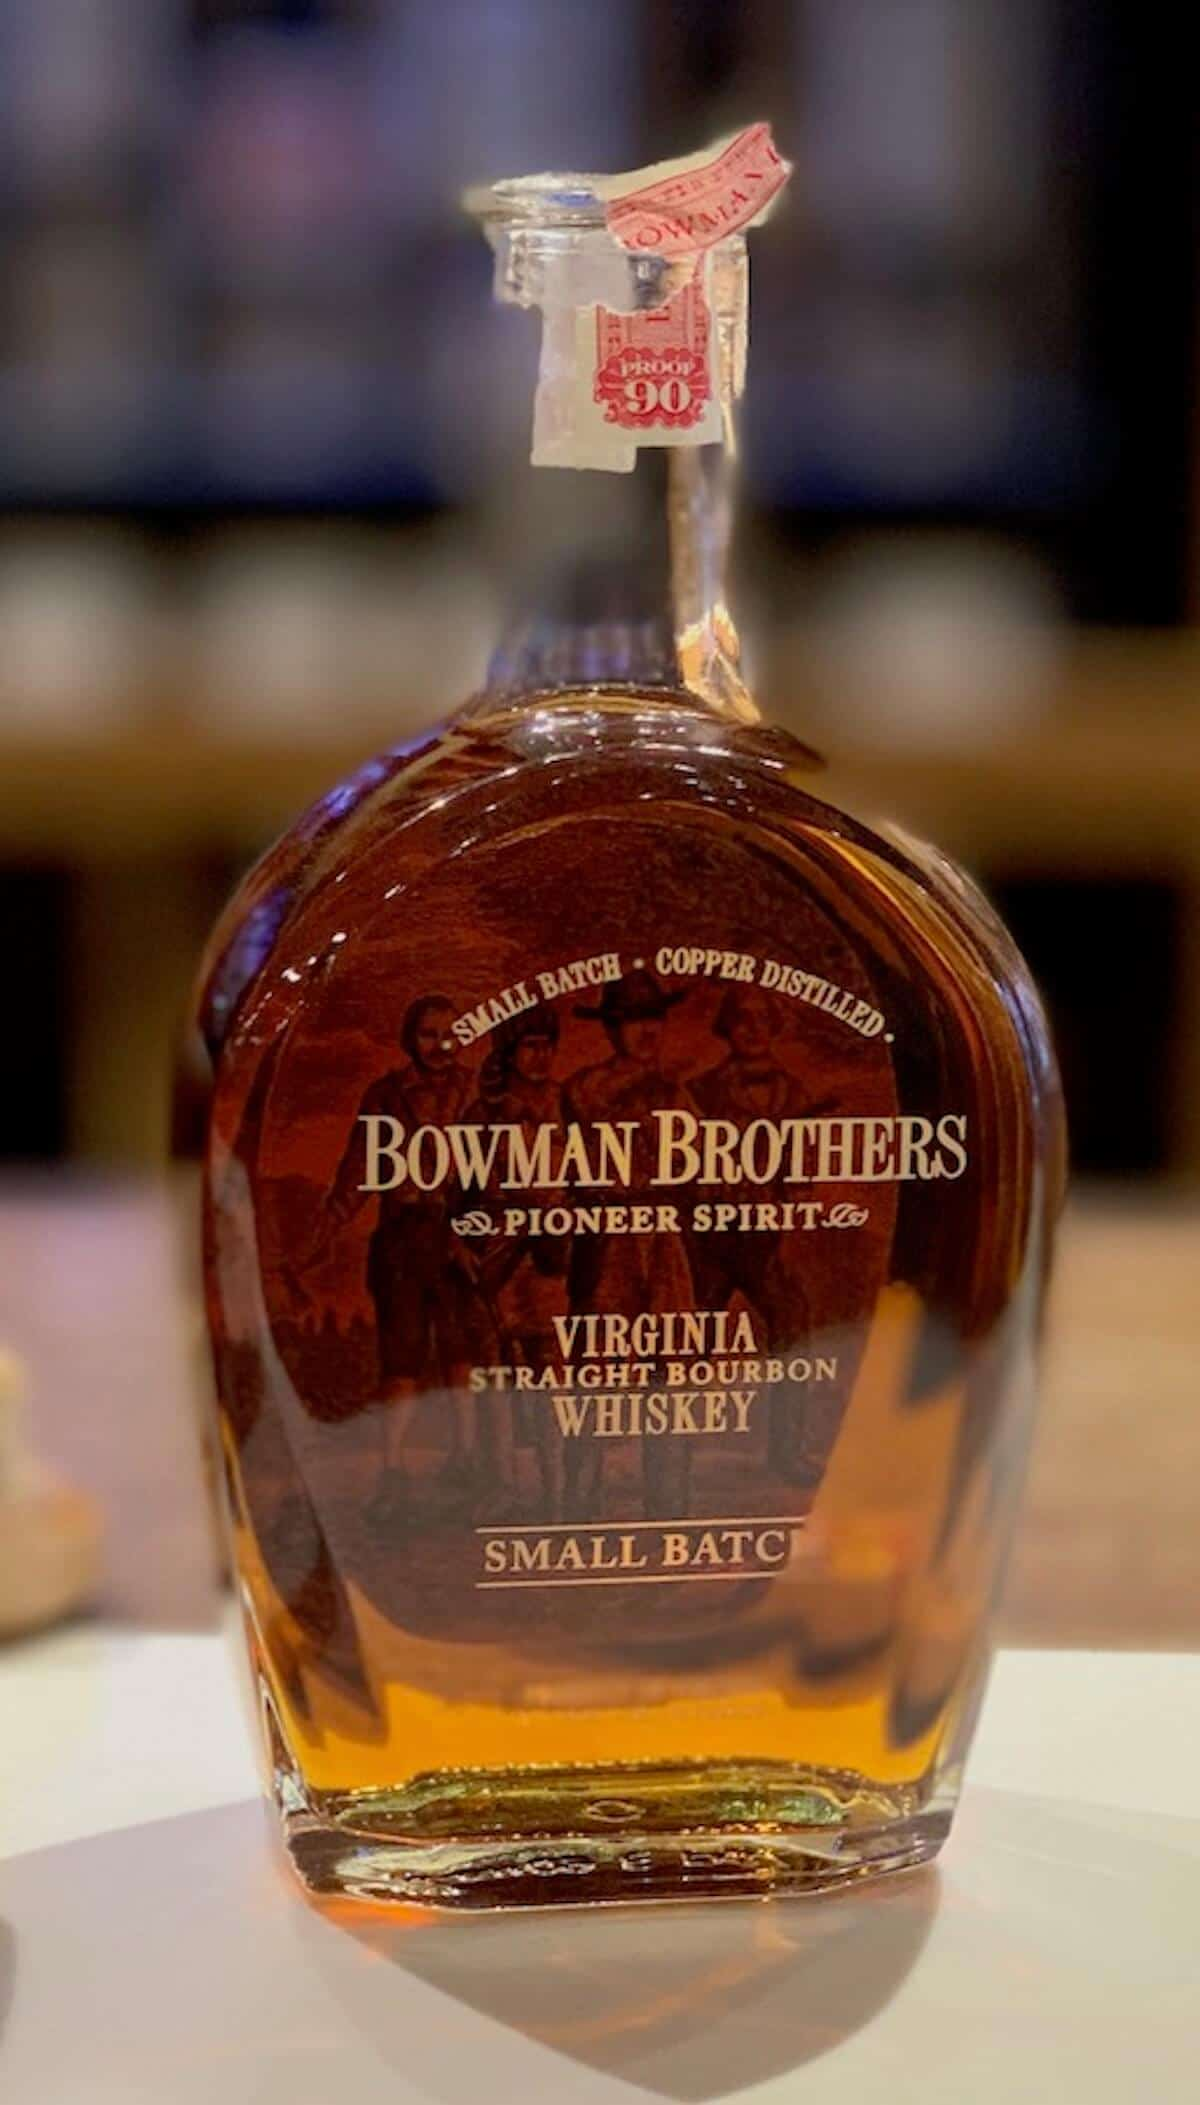 Bowman Brothers in bottle